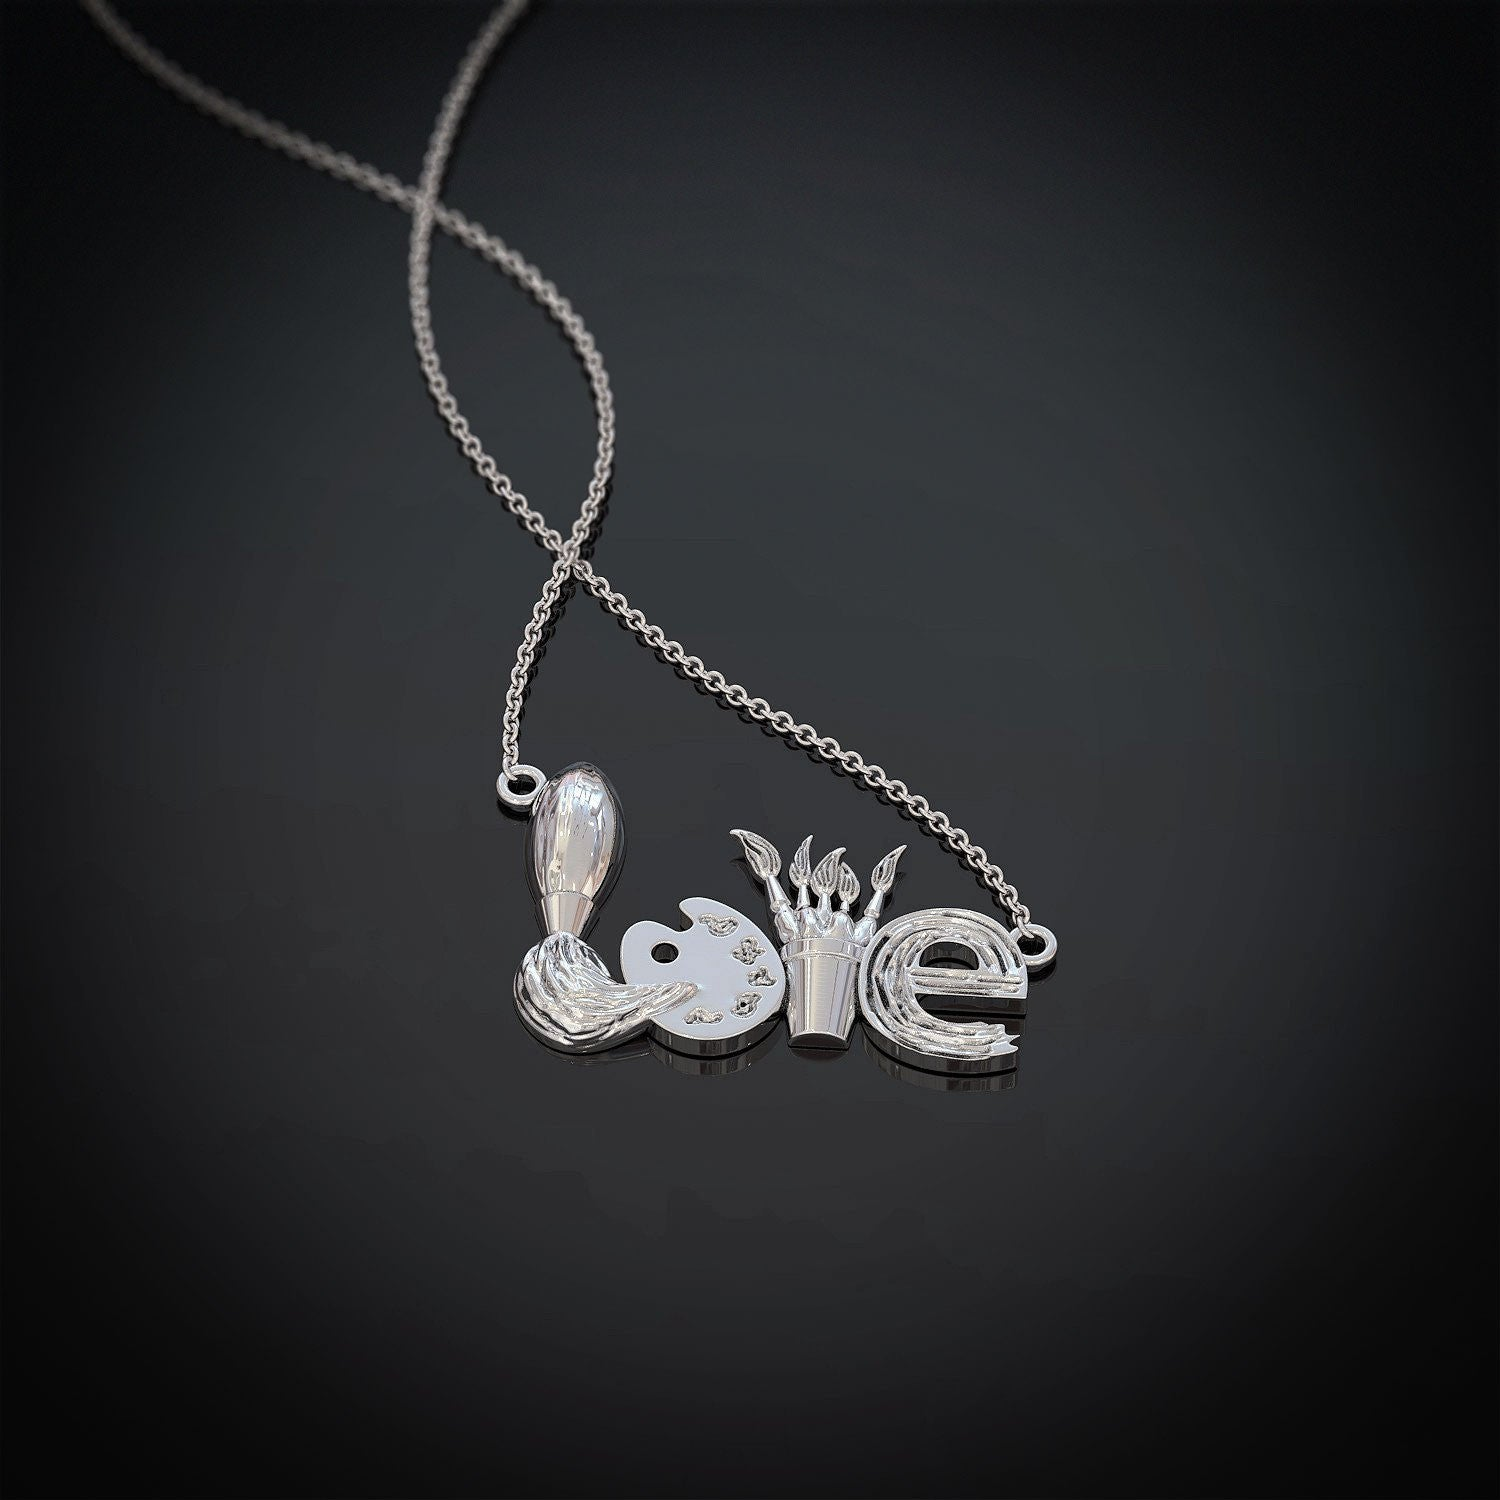 LOVE Art  - Limited Edition